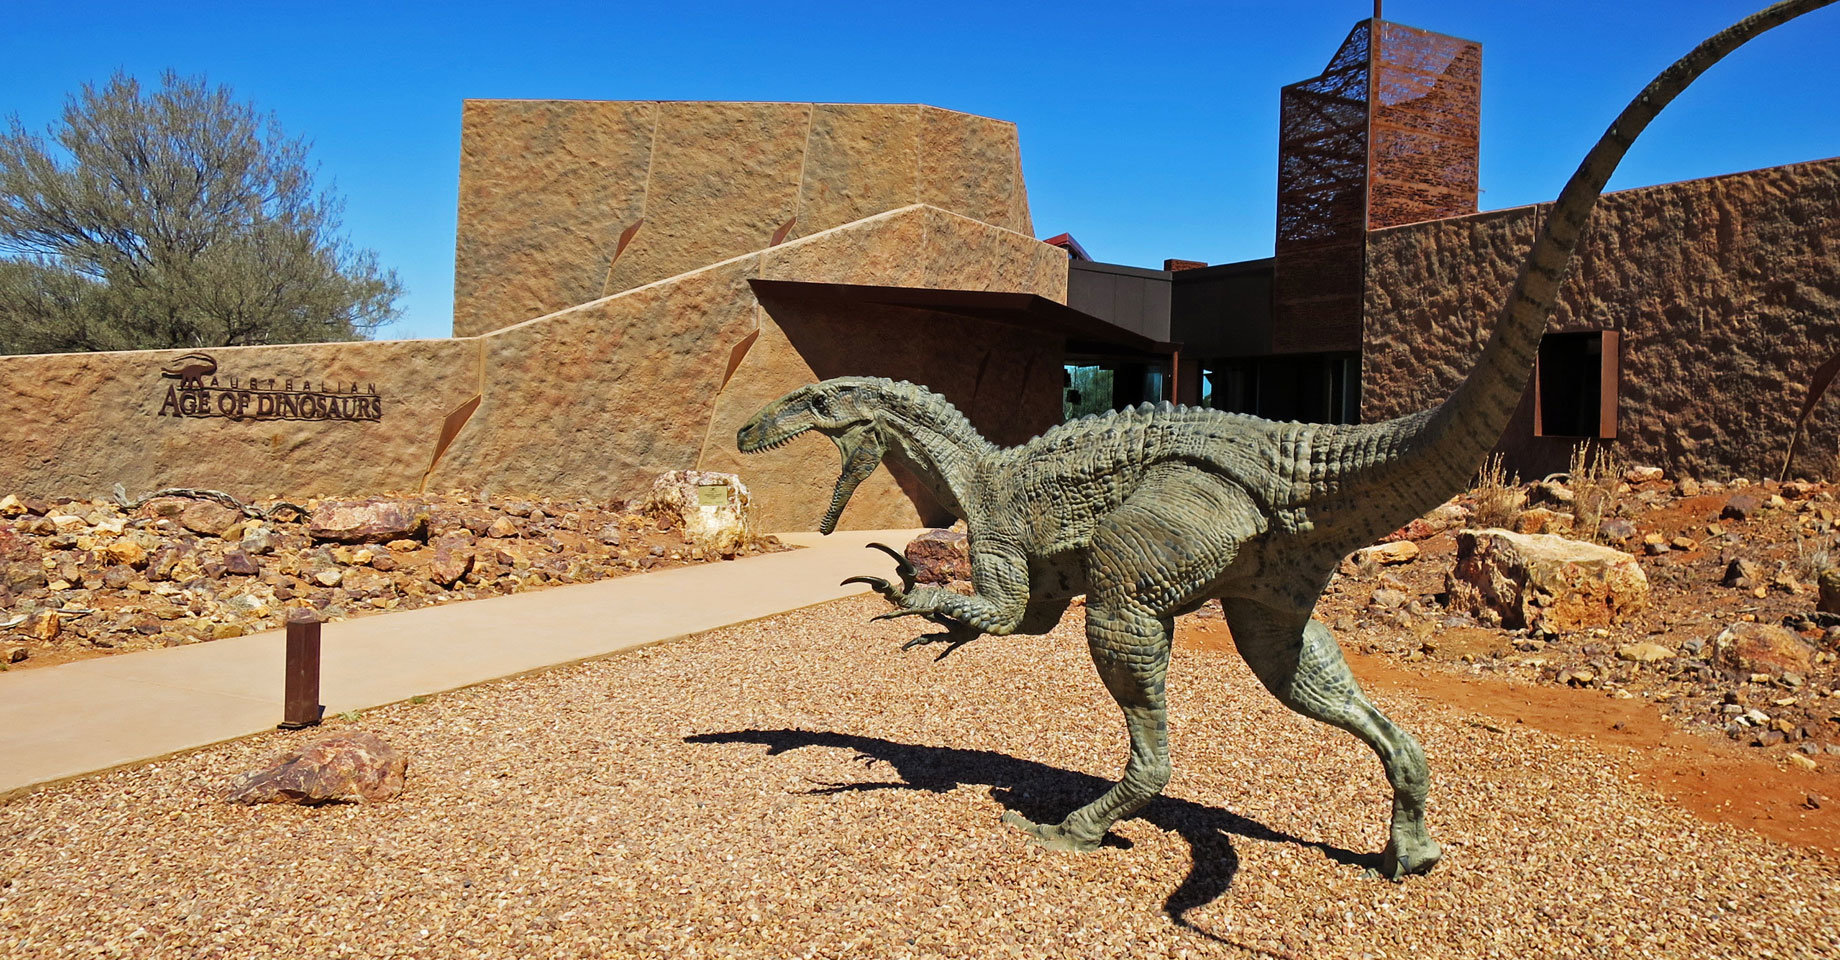 Age of Dinosaurs Museum